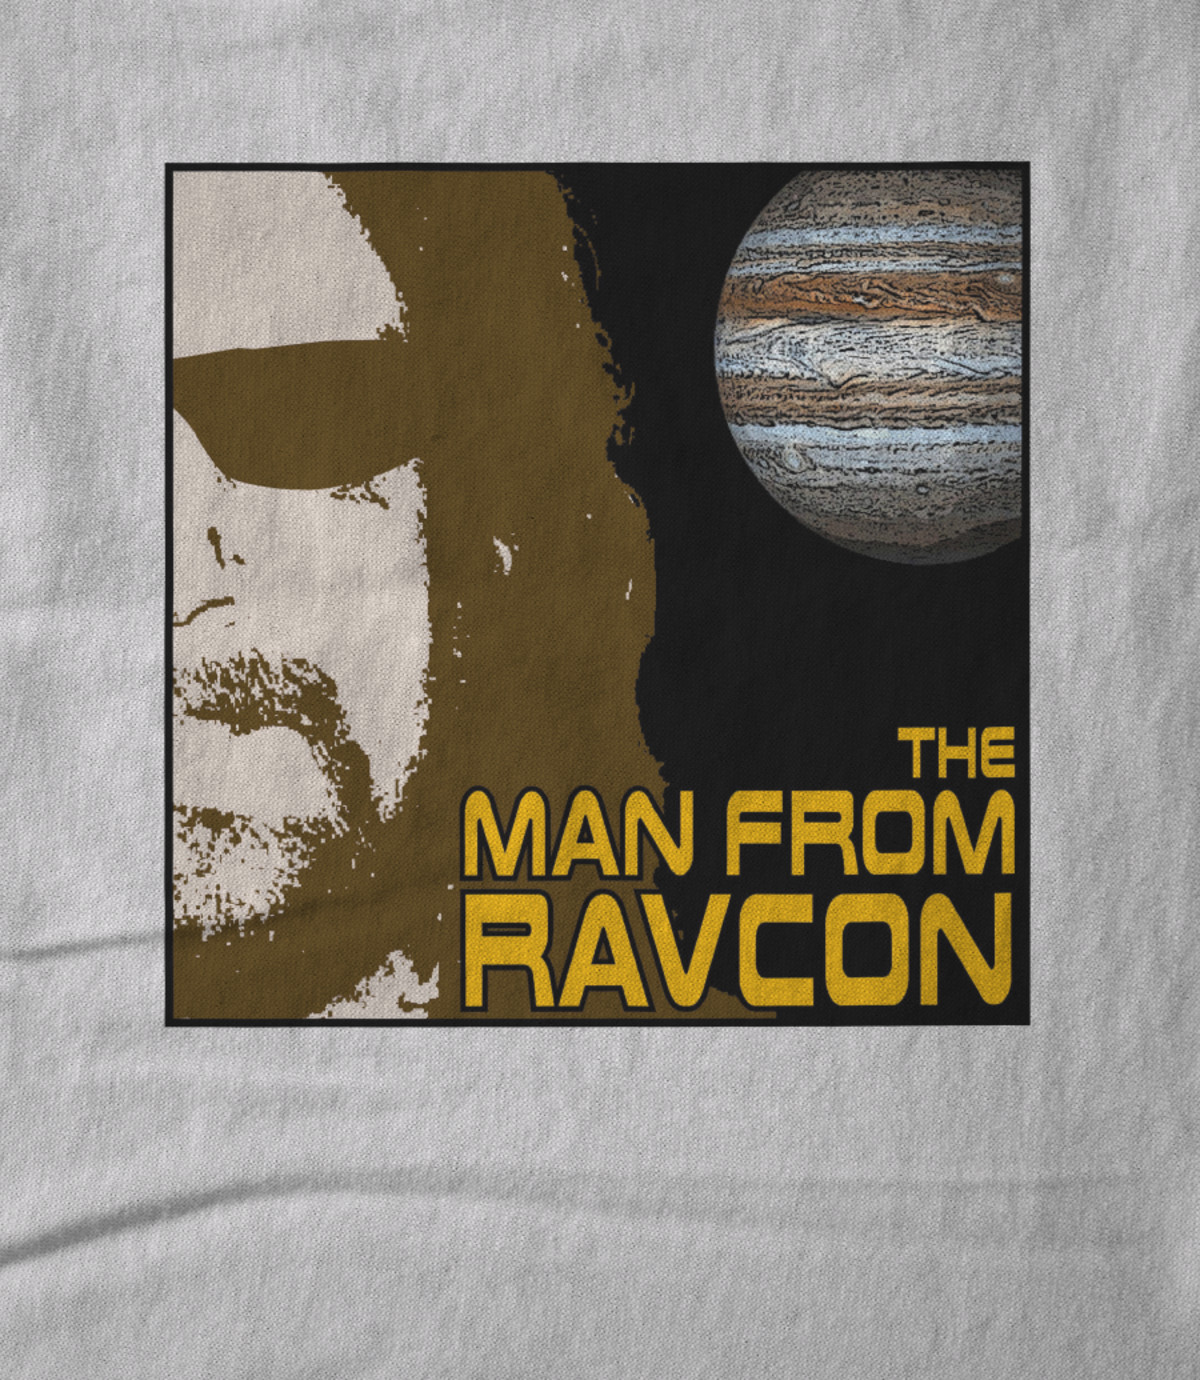 Man from ravcon man from ravcon logo 1479919071